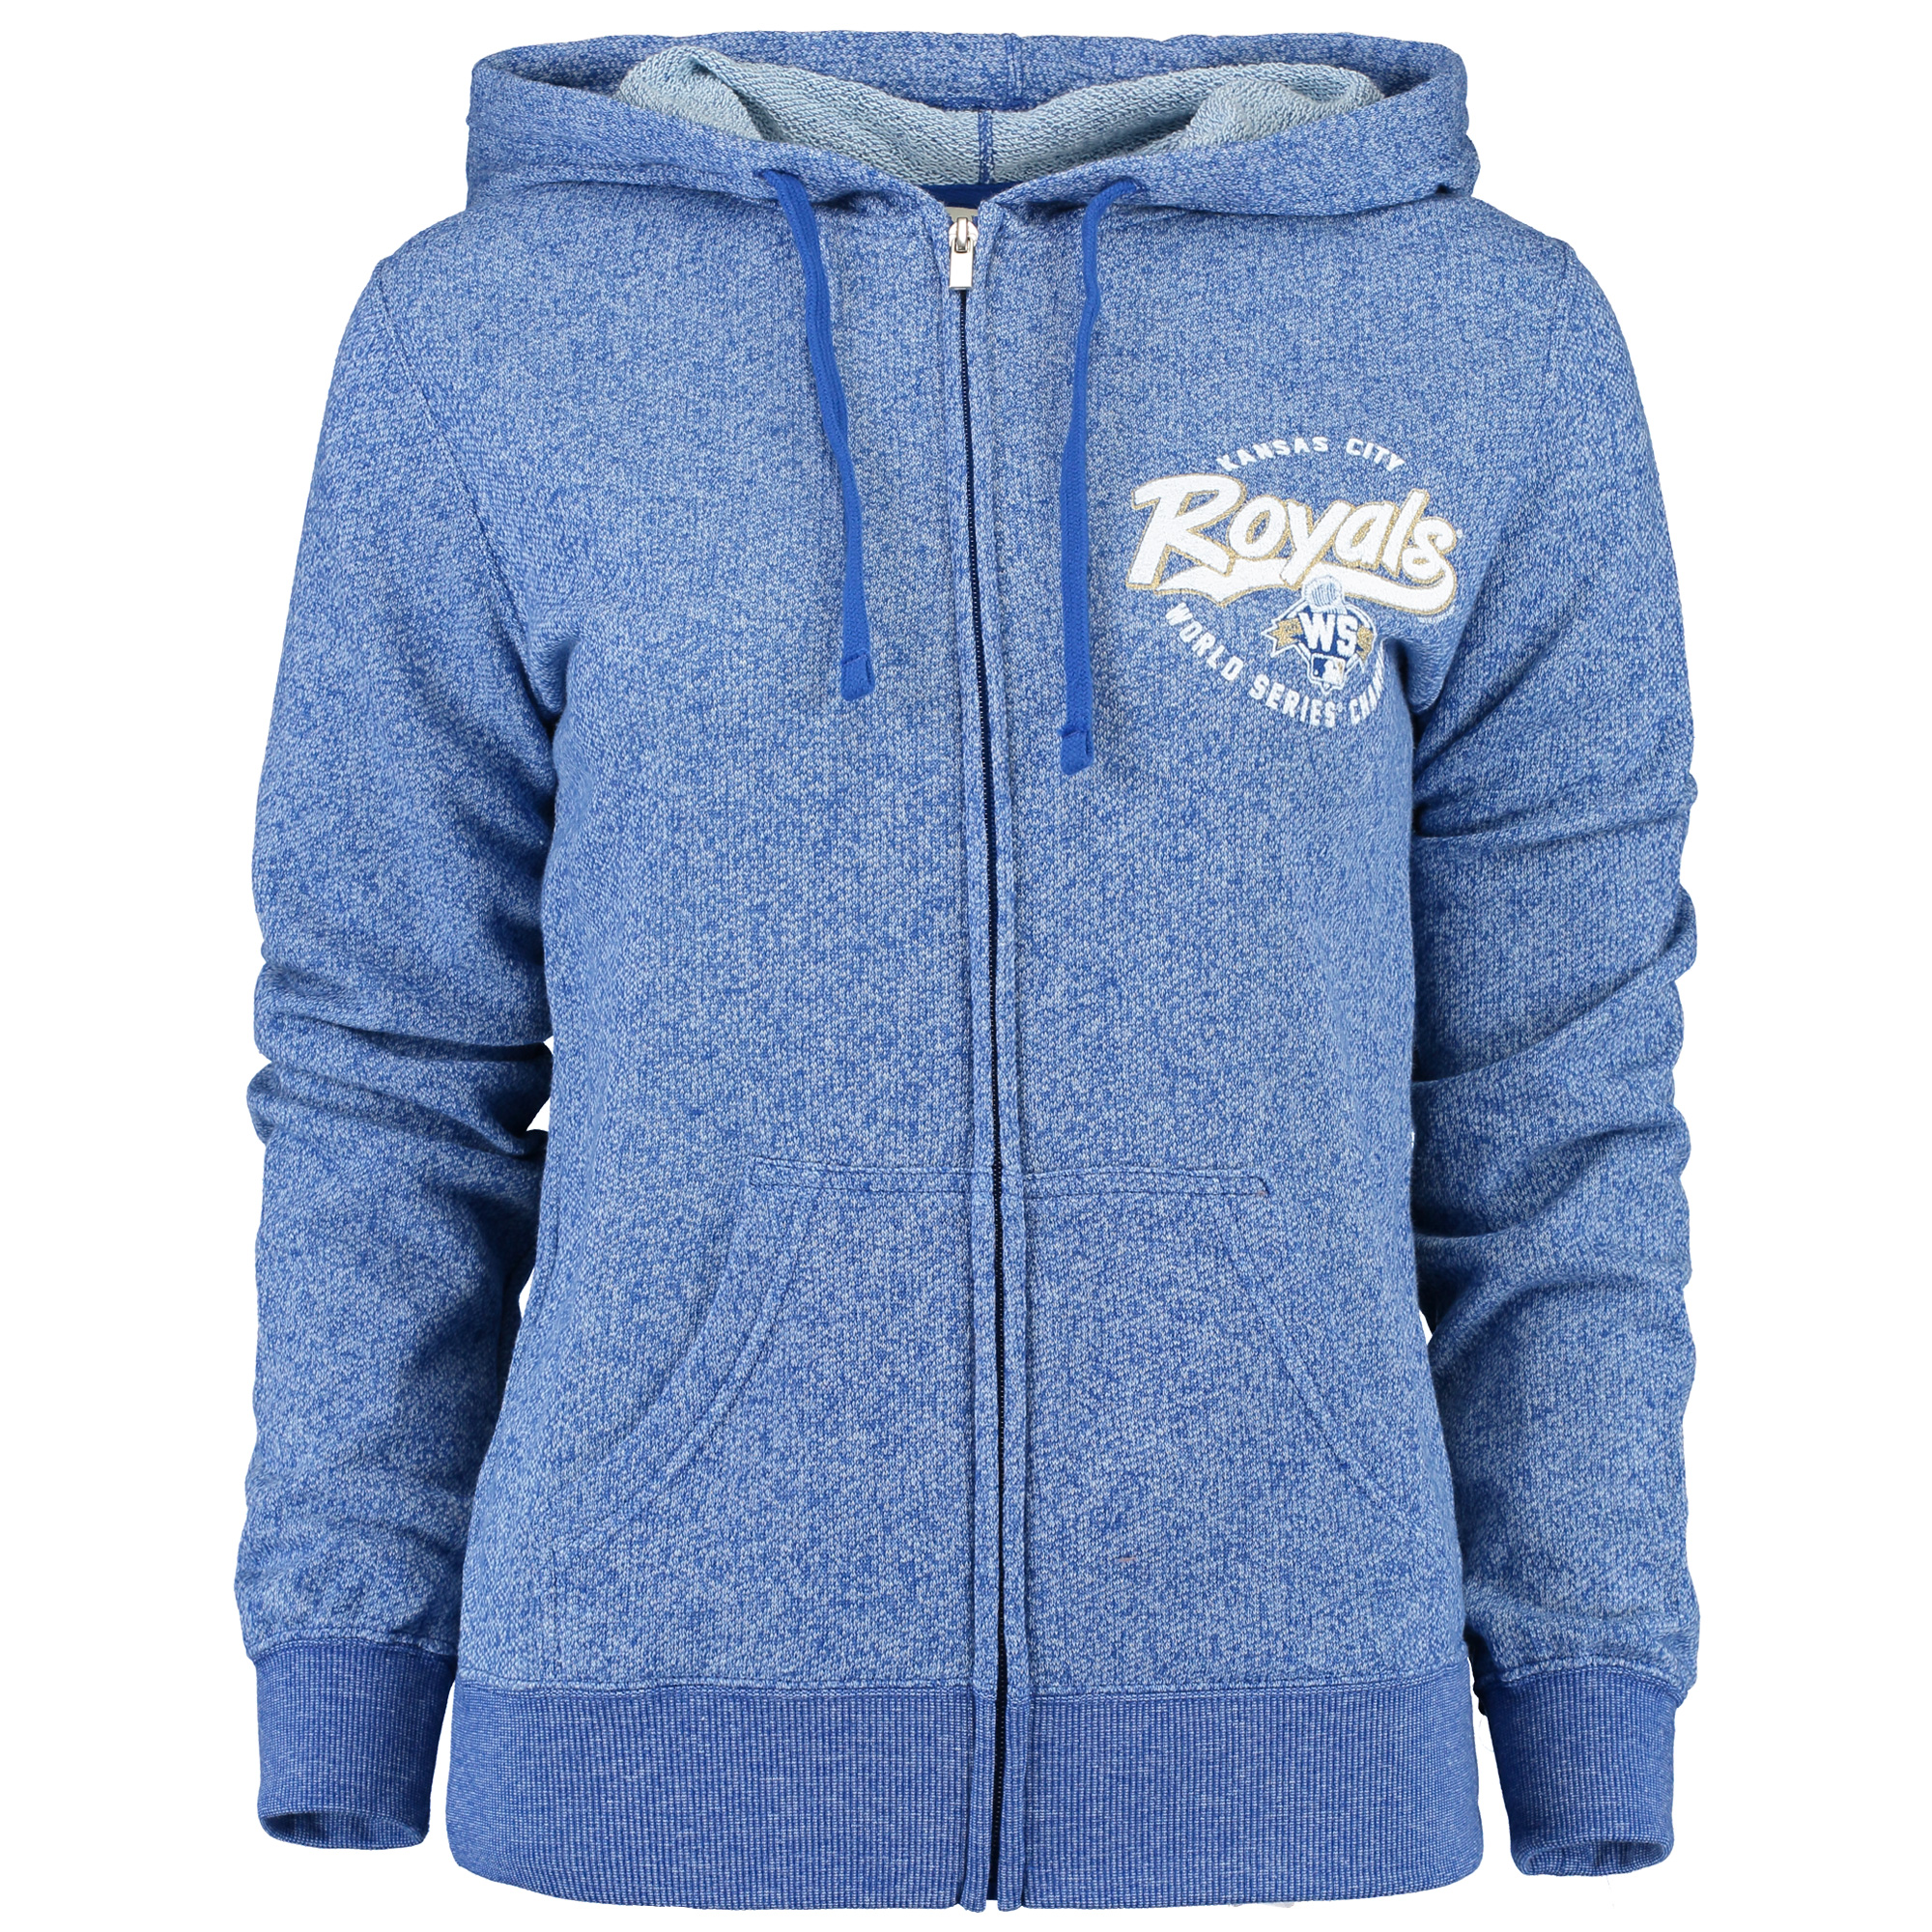 Kansas City Royals Soft as a Grape Women's 2015 World Series Full-Zip Hoodie - Royal - S